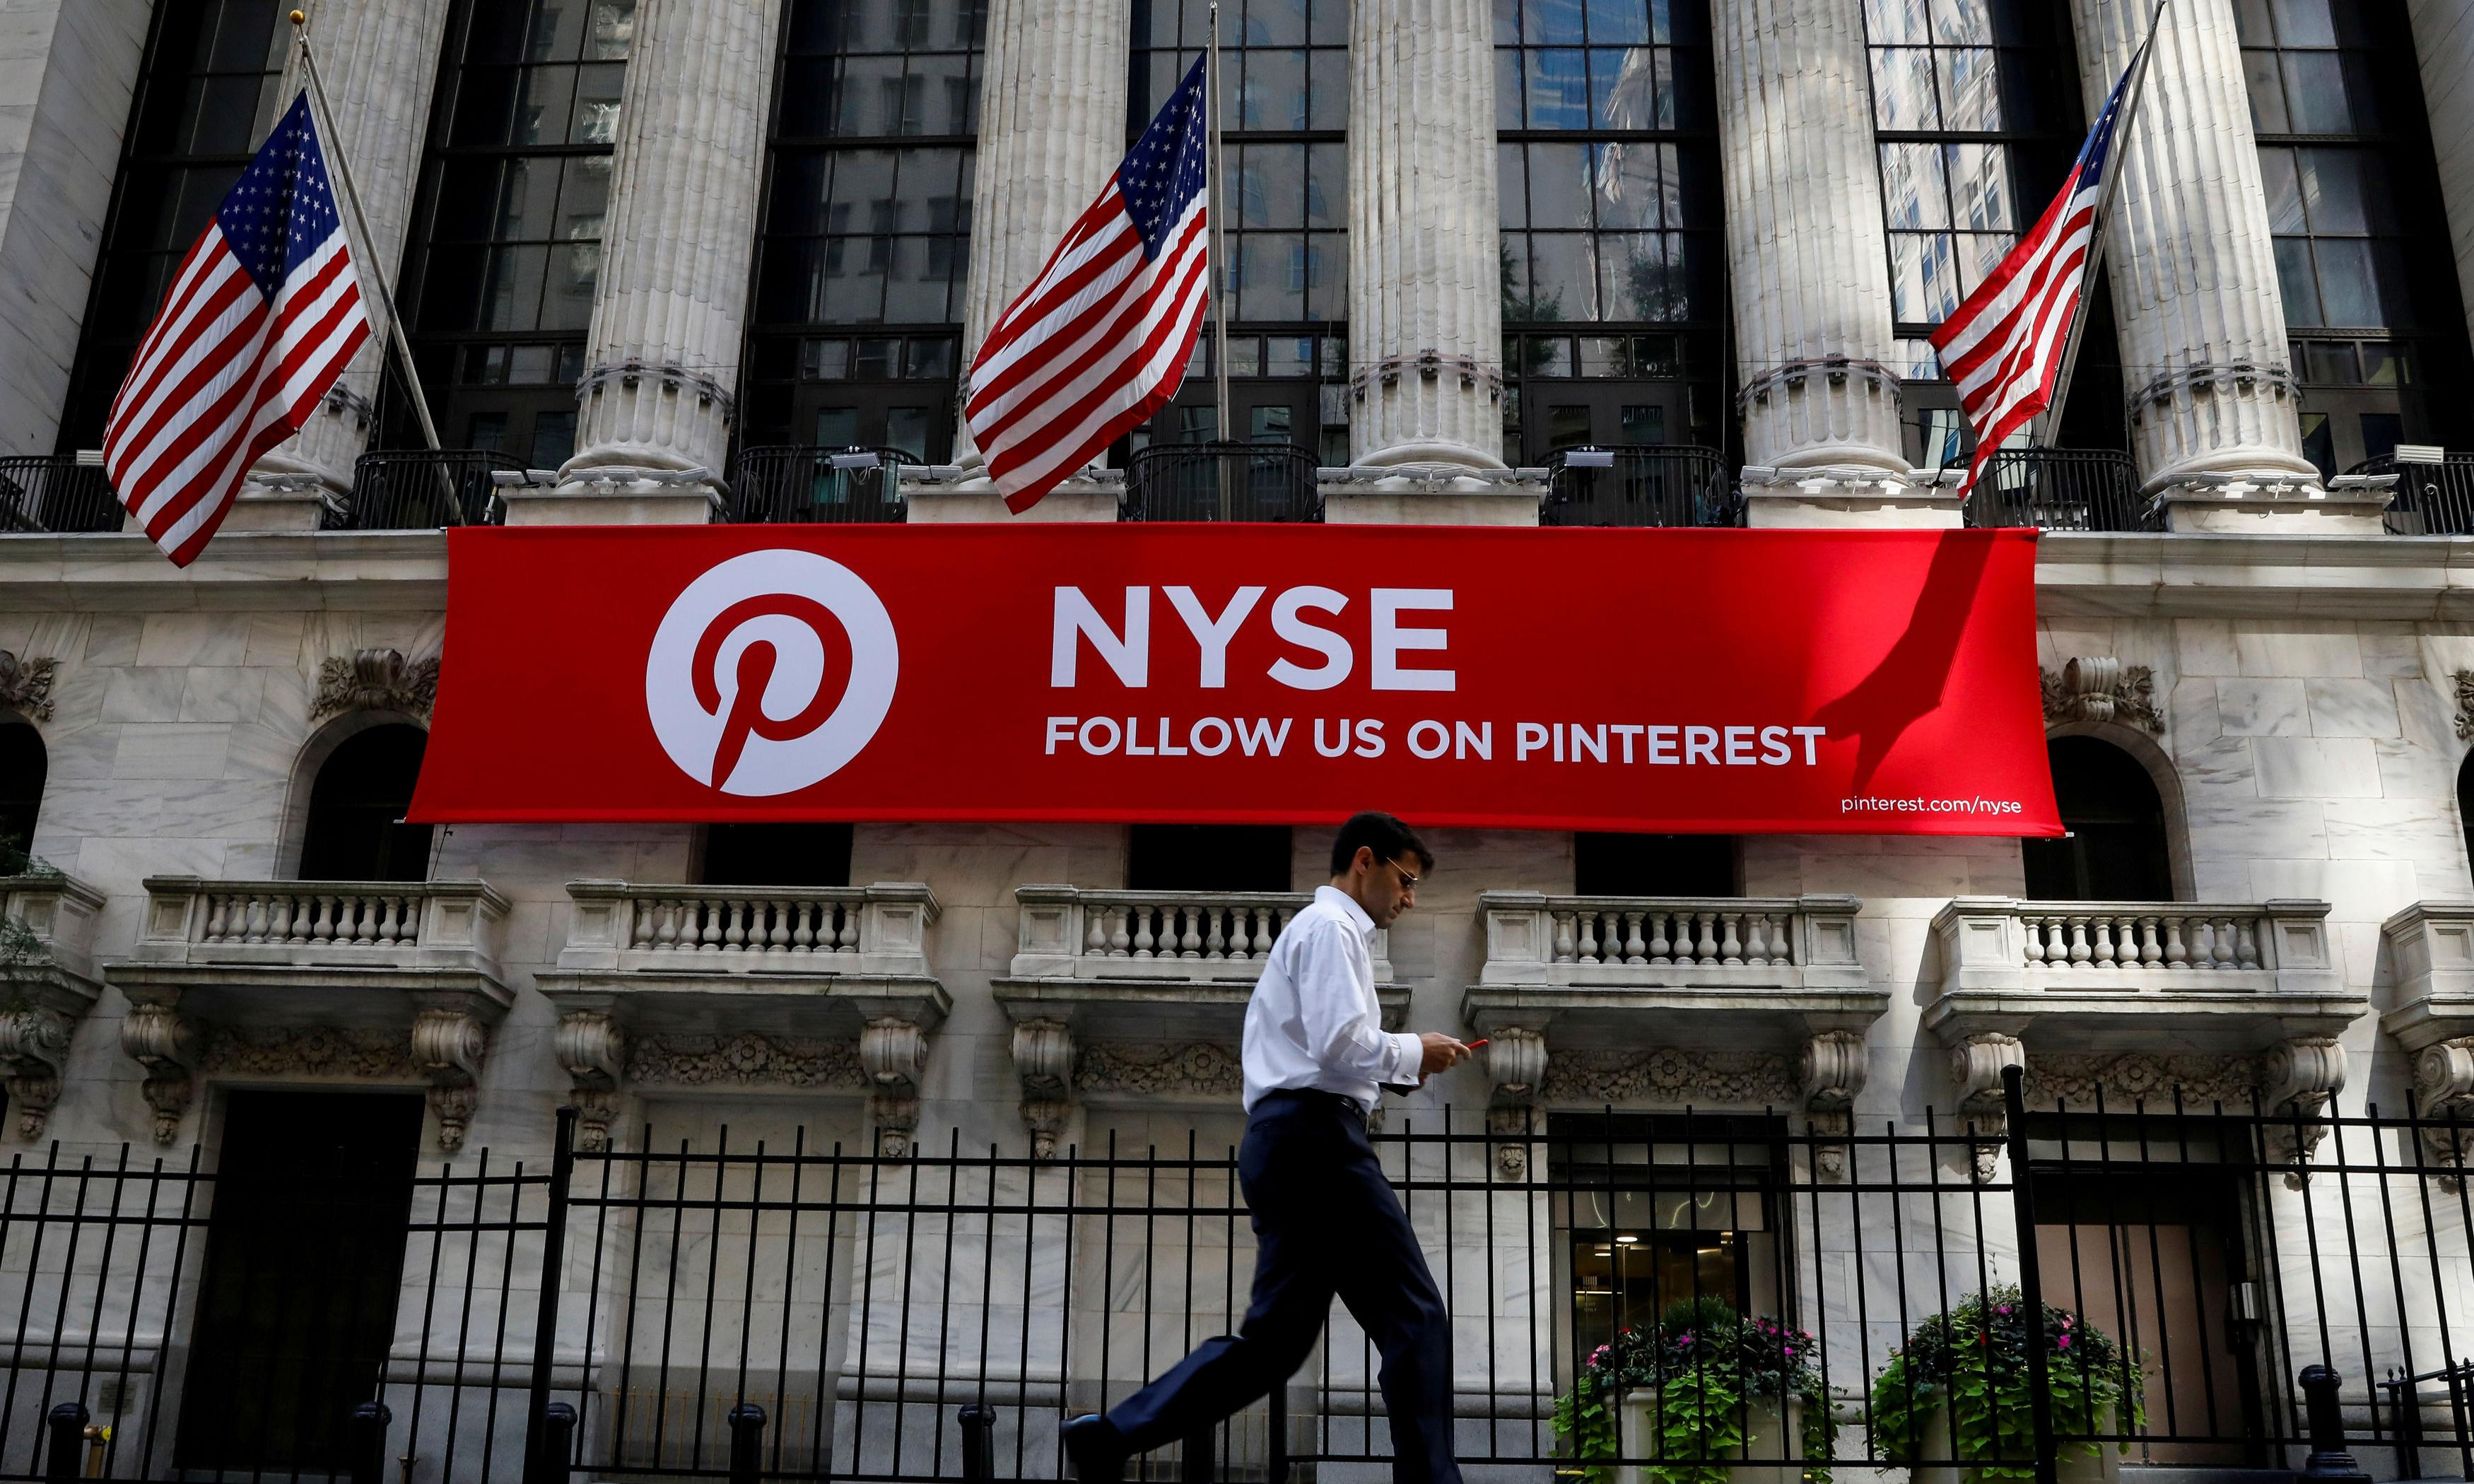 Pinterest's IPO sets company value at $12.7bn amid flurry of tech debuts